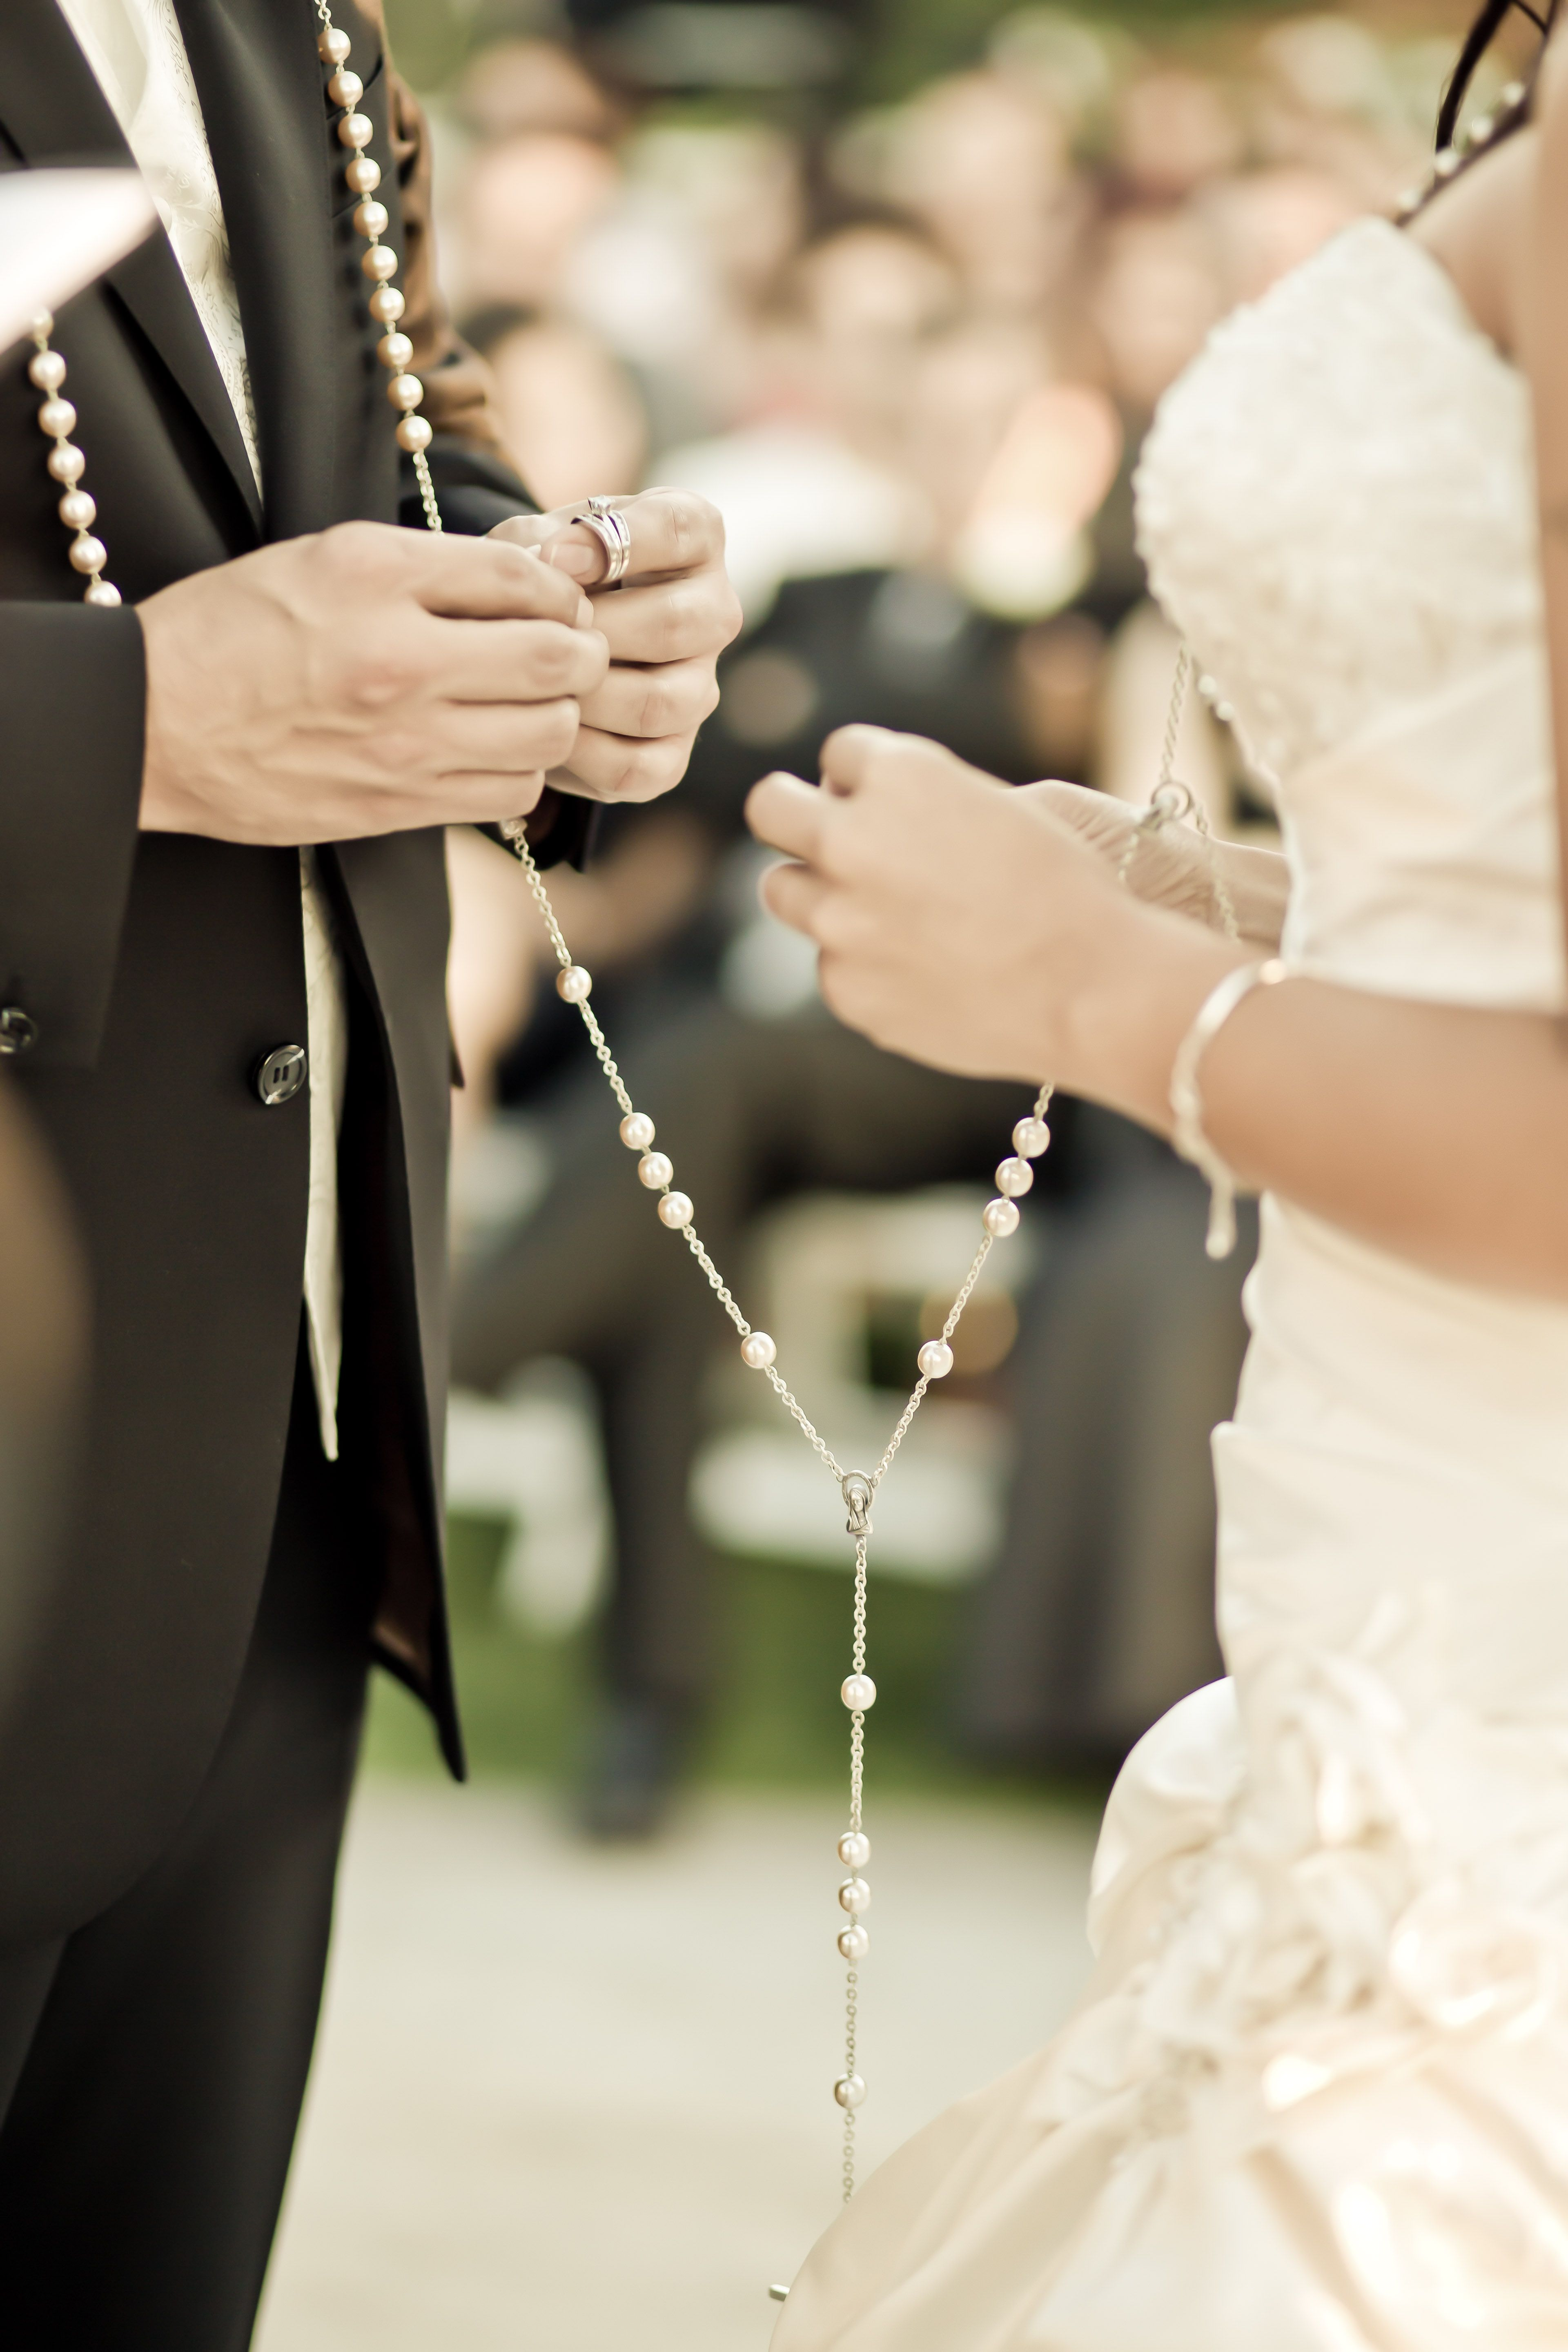 lasso is perfect for Wedding